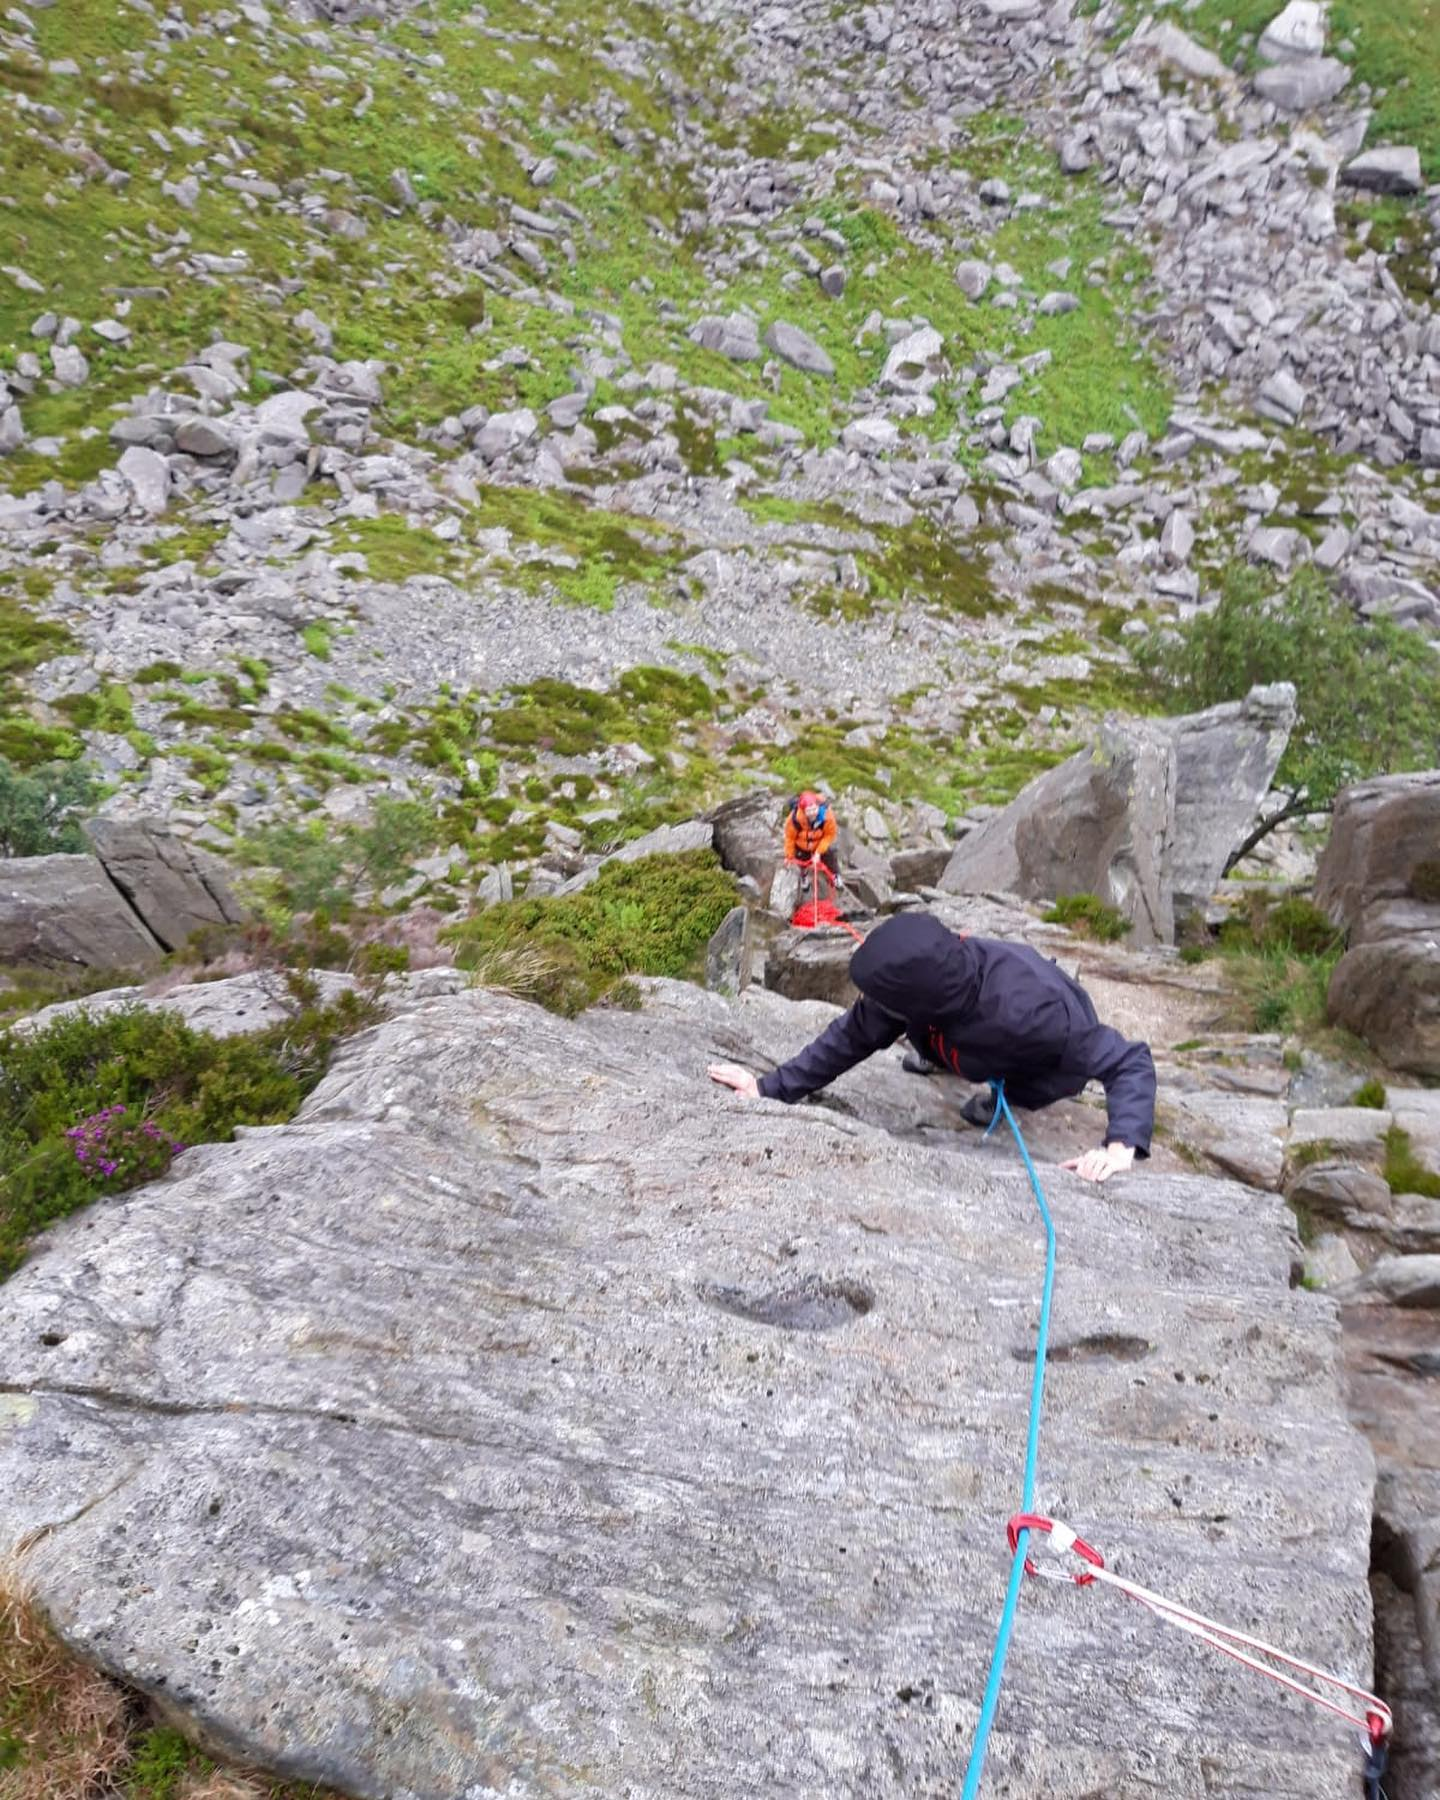 Our next climbing sessions at Windgather Rocks are:  • 30 June 10am - 1pm • 3 July 2.30 - 5.30pm • 18 July 10am - 1pm • 4 Sep 10am - 1pm  Join our friendly, qualified instructor for these session, where you'll learn the basics of ropework, before climbing under their supervision to the Peak District's eighth highest point. Then you'll need to be brave and challenge yourself to abseil back down (or walk down the path instead if you prefer!). Suitable for all from 10+, we hope to see you here.  More info and booking at www.wilderness-development.com, link in our bio 🧗♀️⛰🧗♀️ . . . #wildernessdevelopment #smallbusiness #rockclimbing #climbing #scrambling #abseiling #trysomethingnew #peakdistrict #peakdistrictnationalpark #peakdistrictclimbing #mountainsfellsandhikes #roamtheuk #outdoorpursuits #outdooradventures #outdooractivities #nationalparksuk #booknow